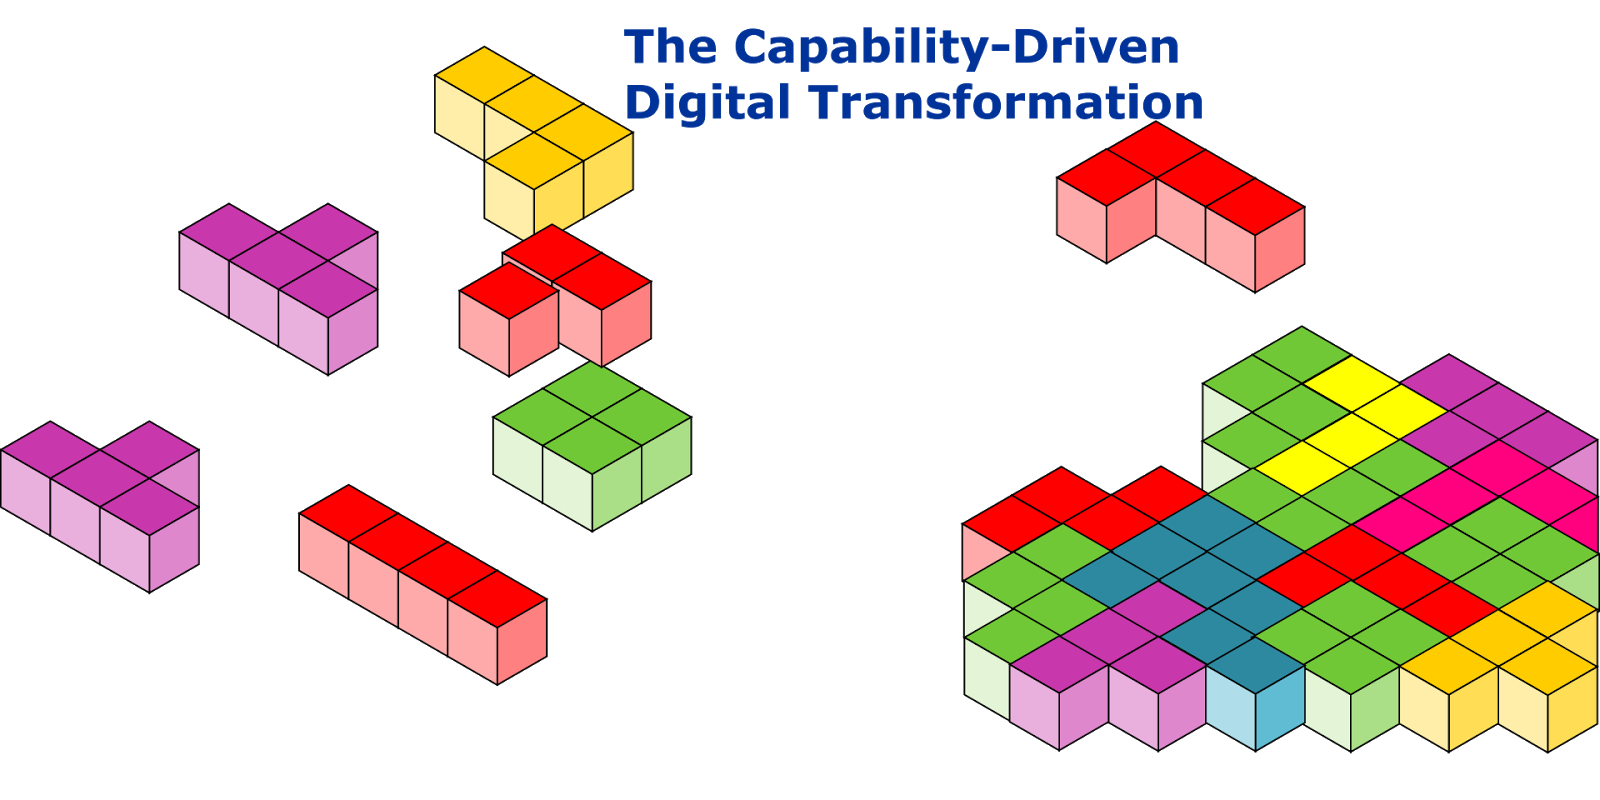 medium resolution of digital capabilities are the fundamental building blocks in digital transformations with which companies can transform business models customer experiences